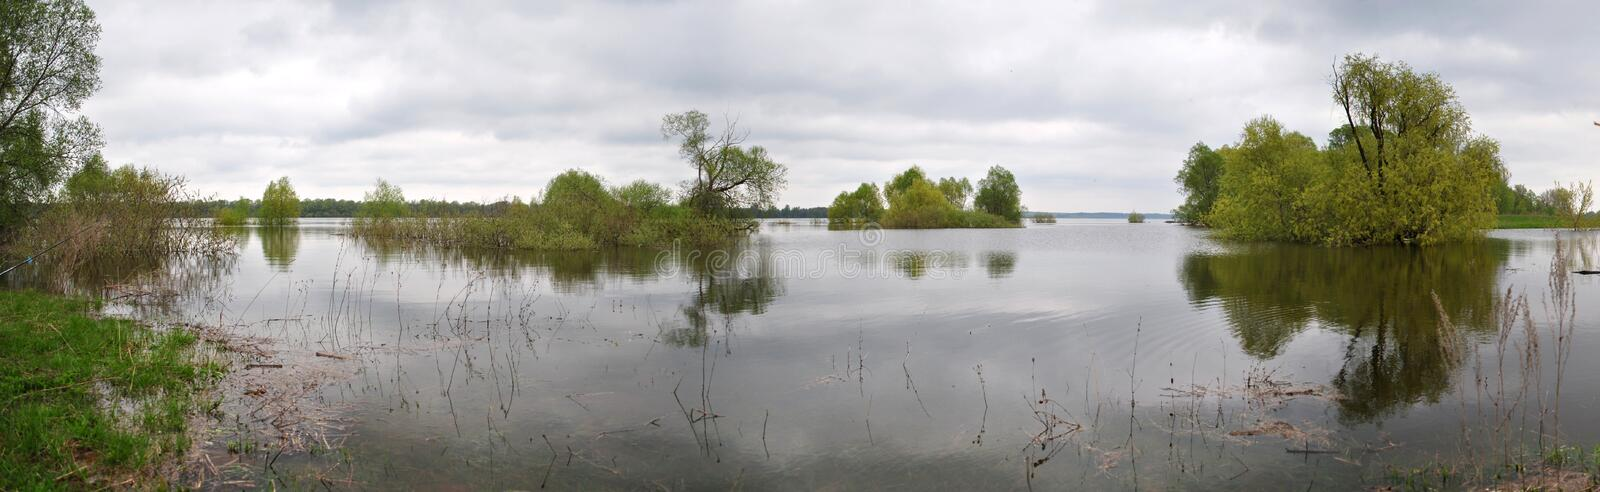 A spill on the river. Right Bank of the Oka river, spring, may spill royalty free stock photography